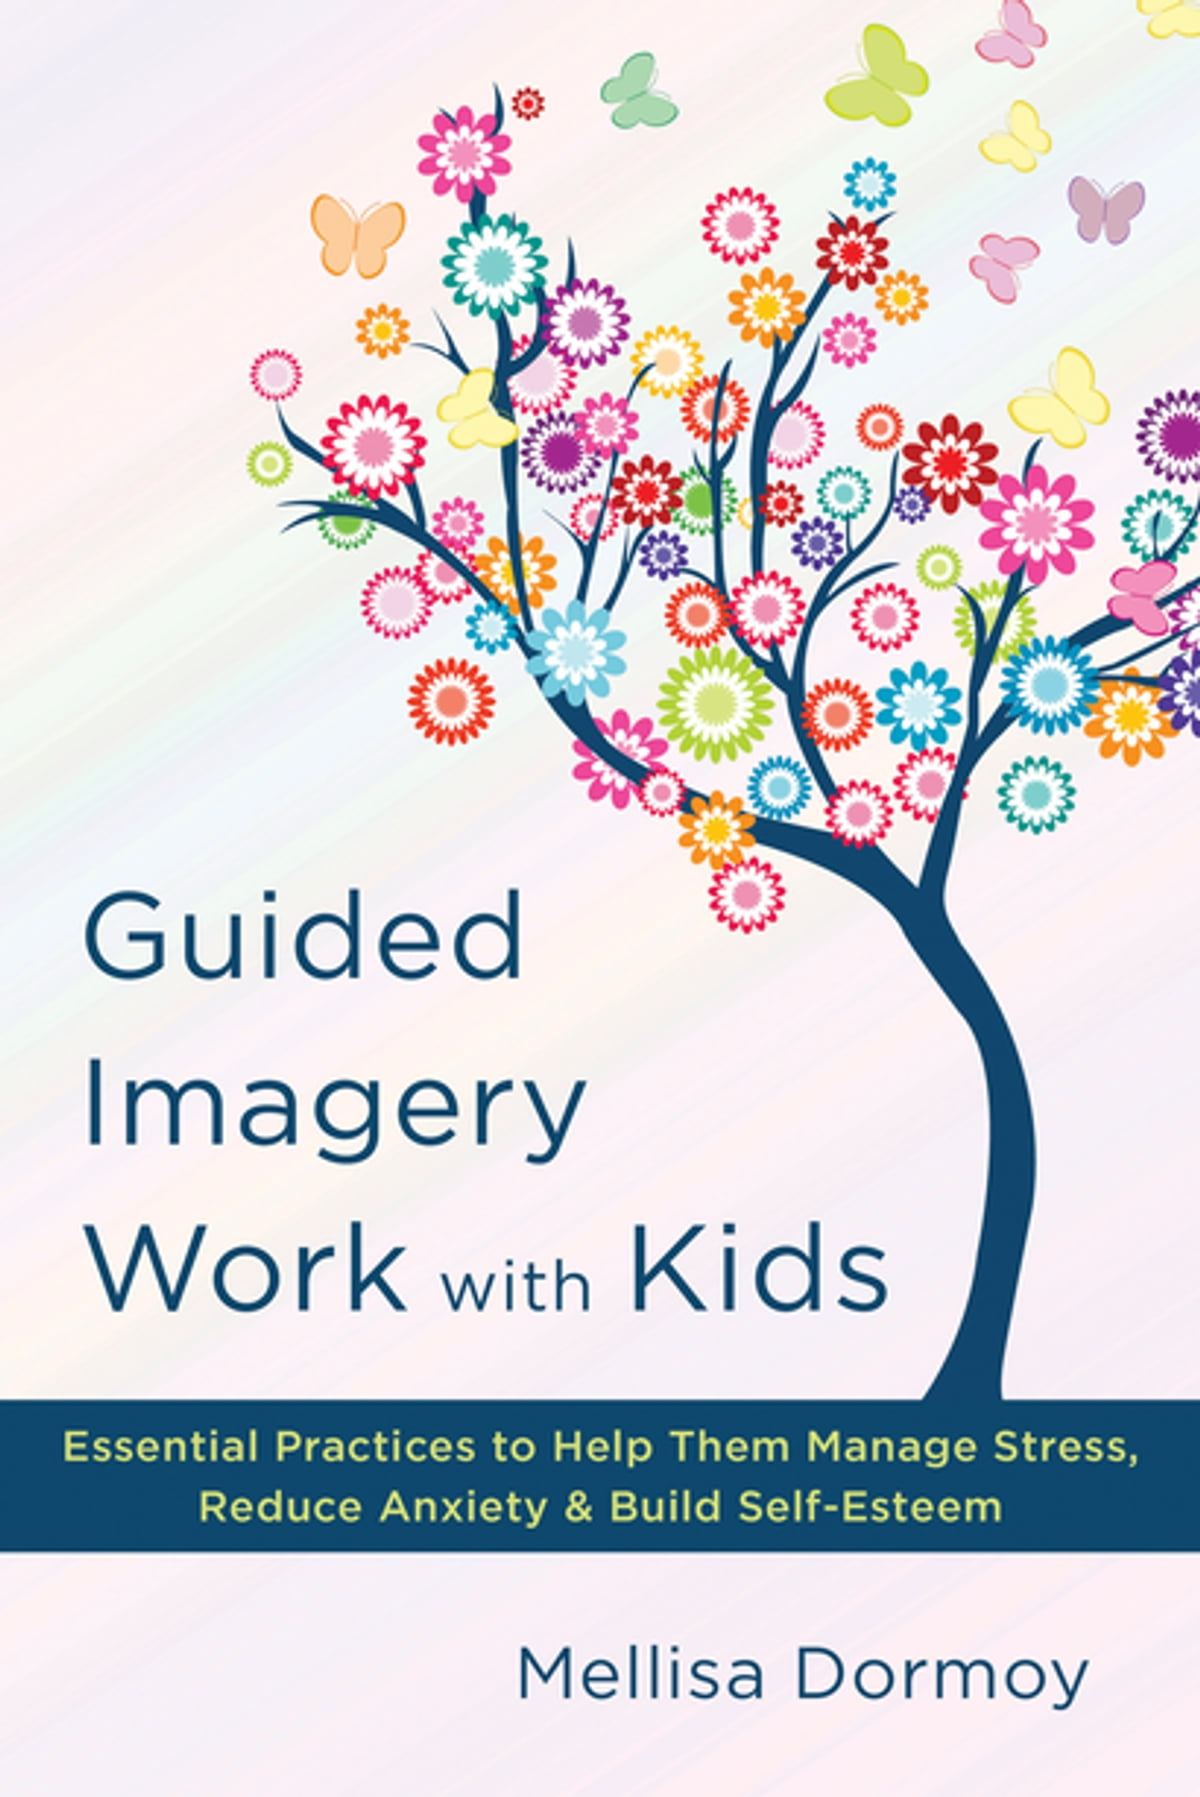 Guided Imagery Work with Kids: Essential Practices to Help Them Manage  Stress, Reduce Anxiety & Build Self-Esteem ebook by Mellisa Dormoy -  Rakuten